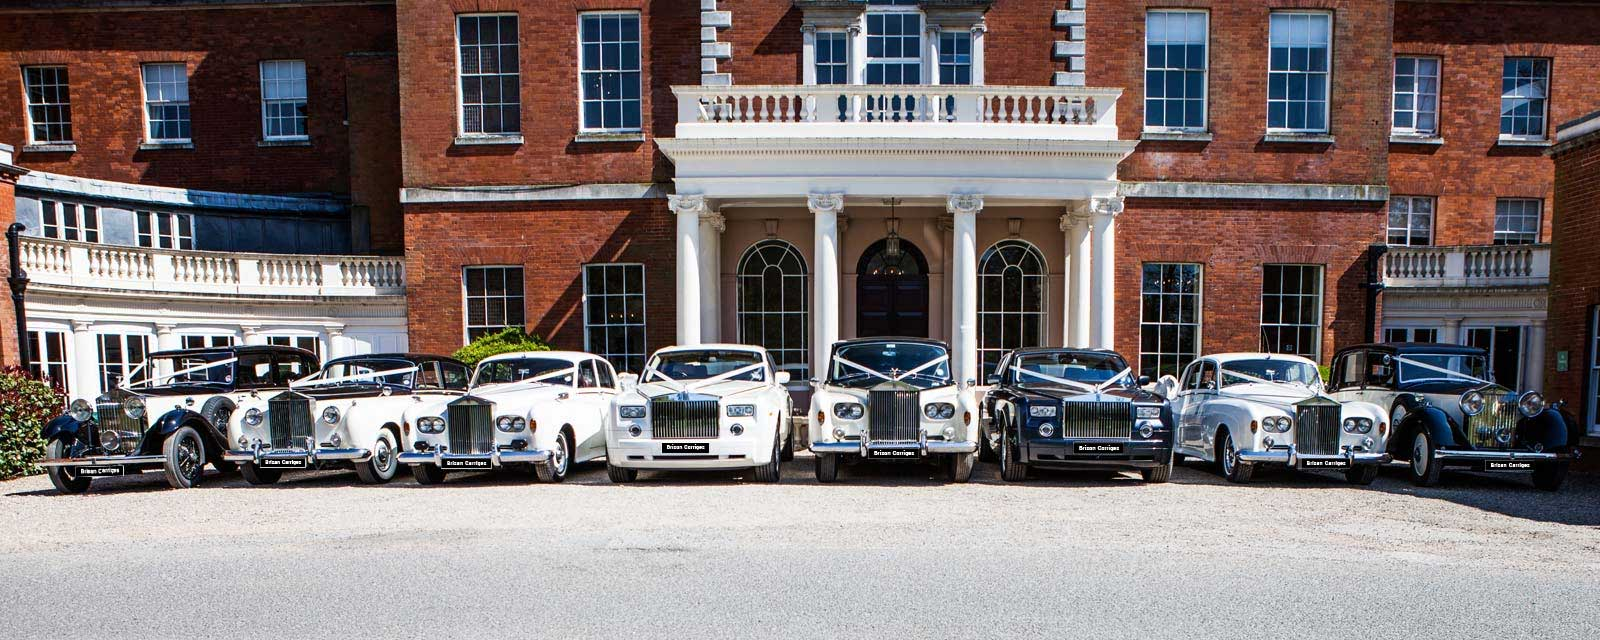 Brisan Carriages Wedding Car Hire In Hertfordshire Essex And Beyond